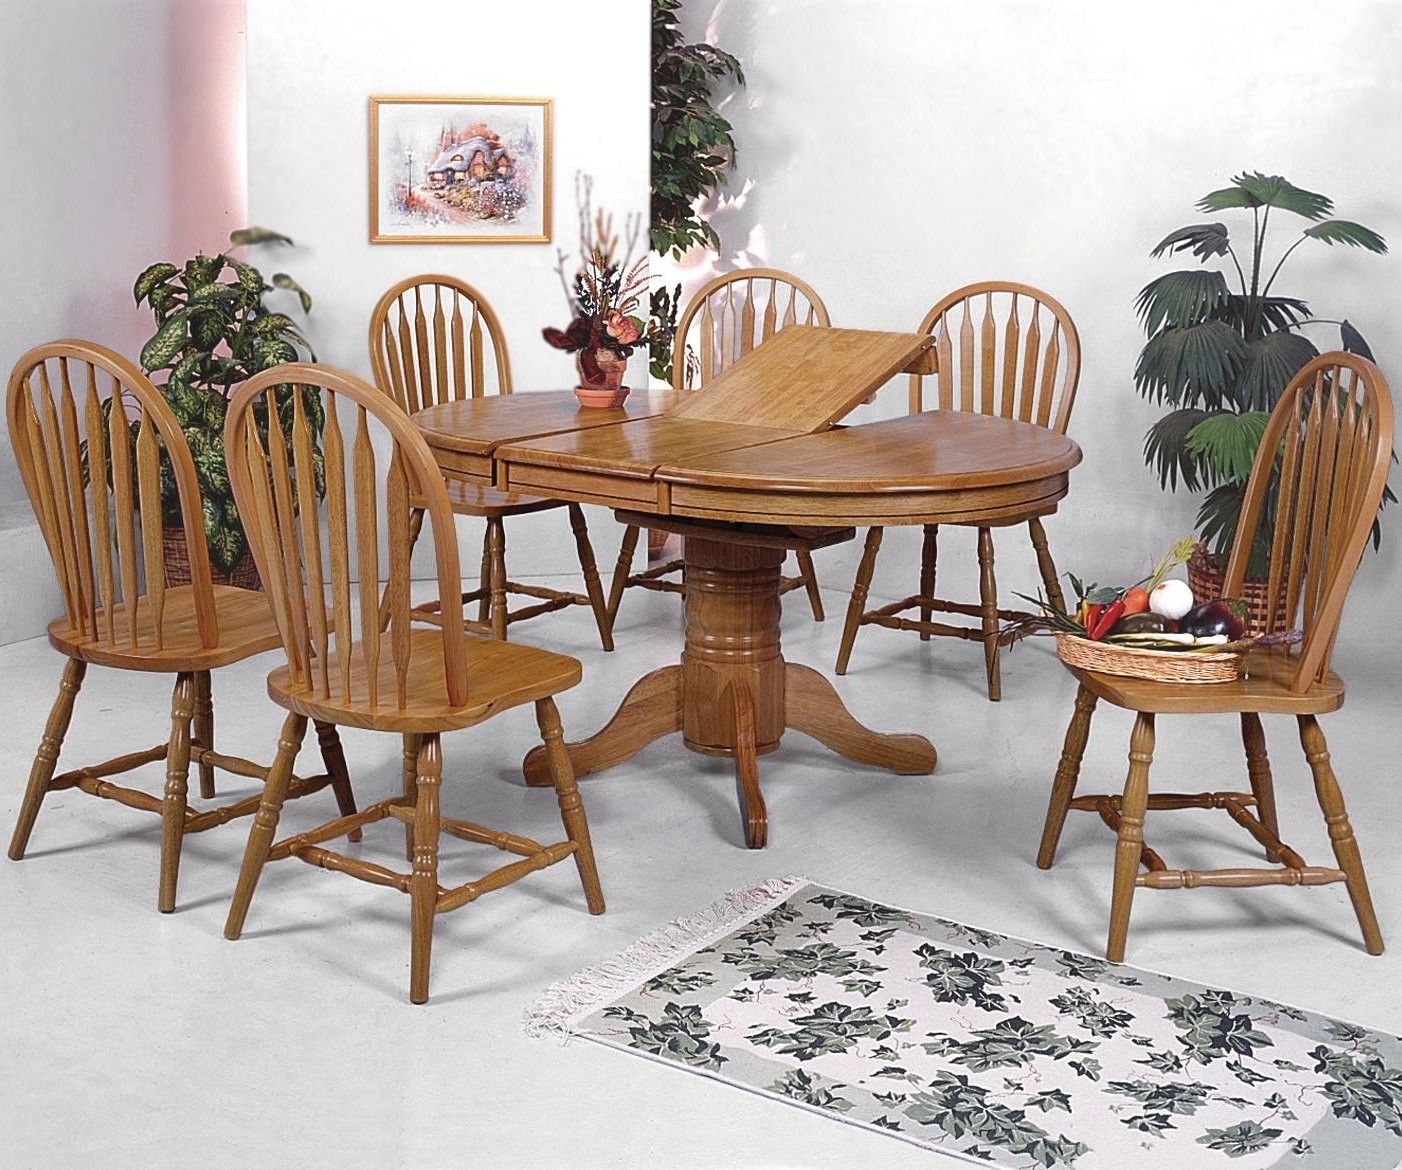 Most Recent Windsor Solid Piece Oval Dining Tab Solid Wood Dining Table And 6 Inside Light Oak Dining Tables And 6 Chairs (View 19 of 25)